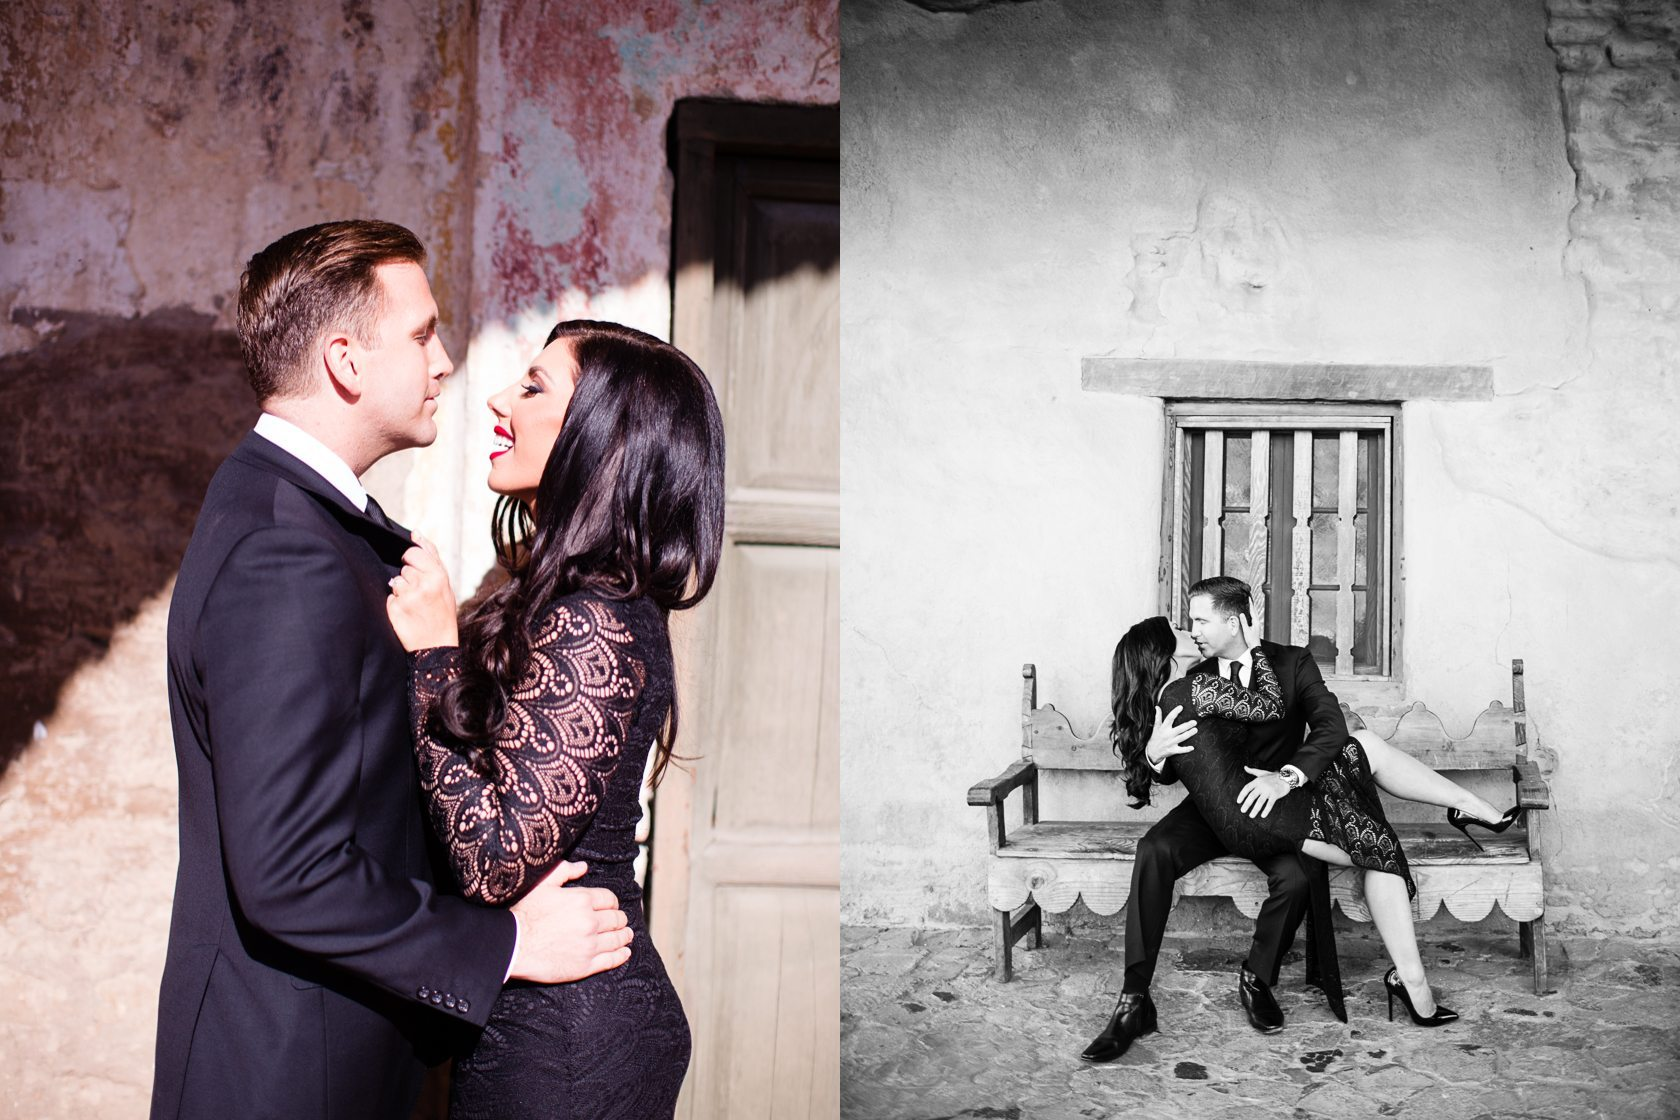 Mission_San_Juan_Capistrano_Engagement_Session_01.jpg